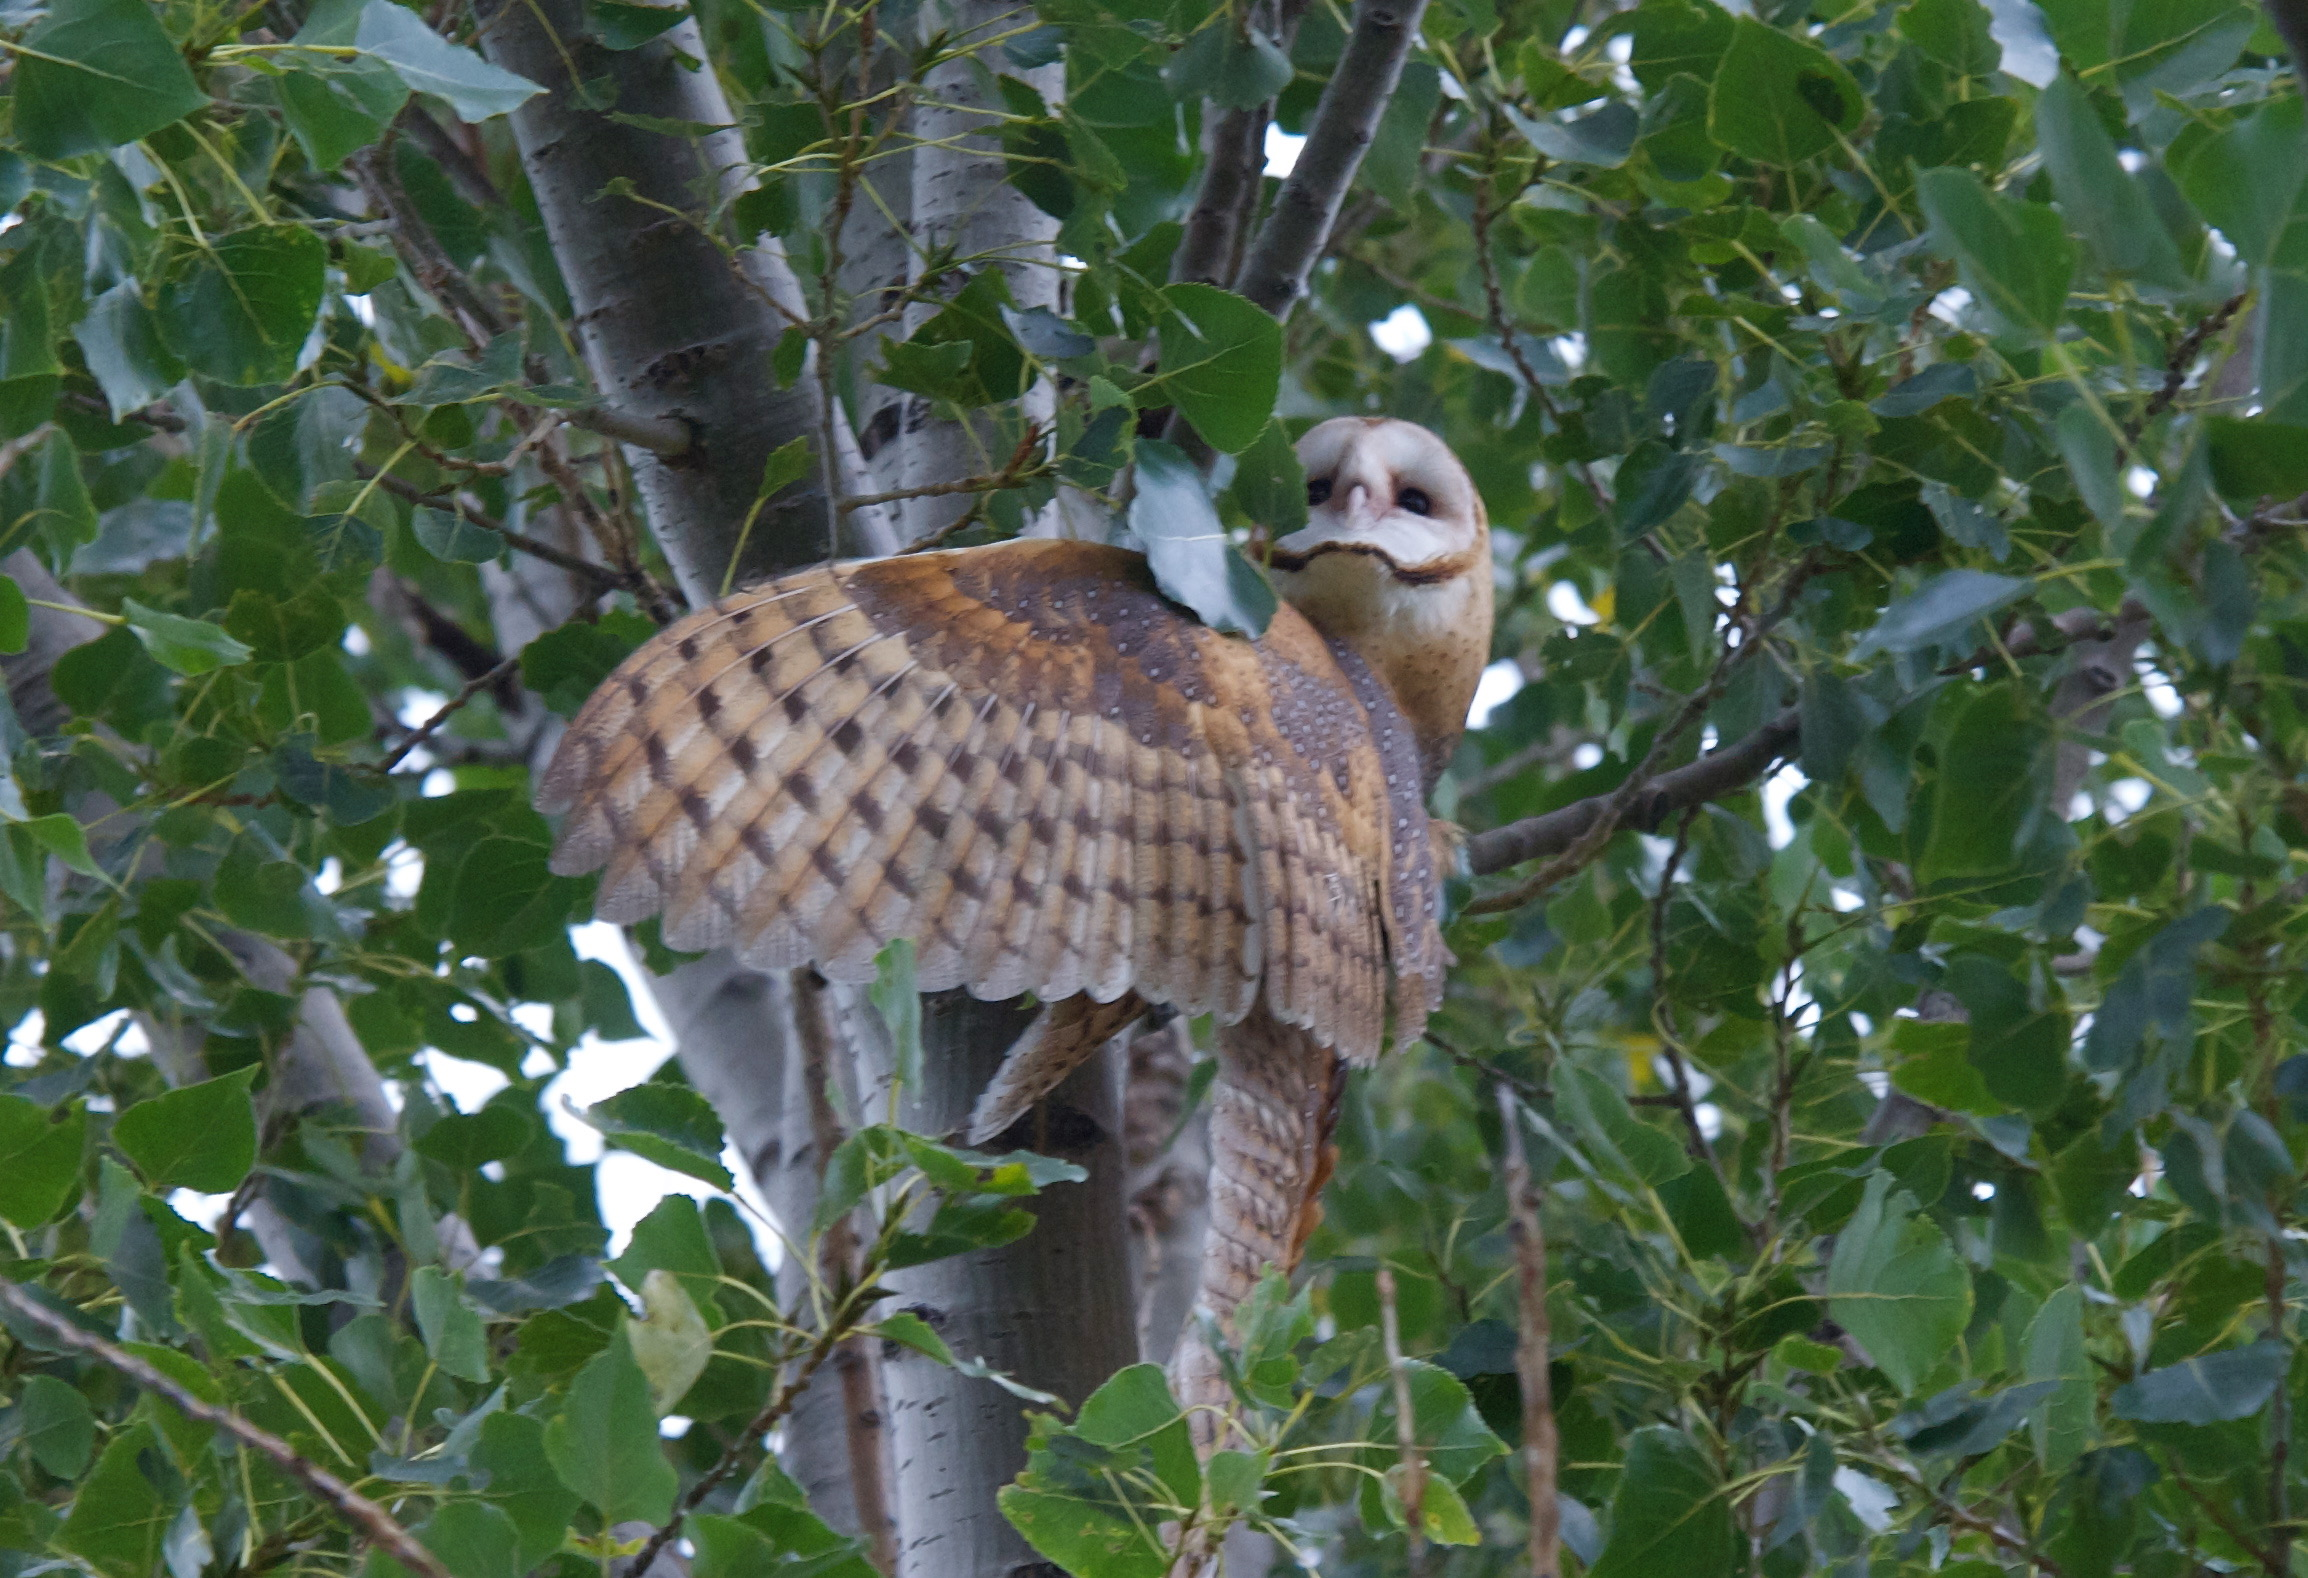 Barn Owl knocked out of tree by Jays